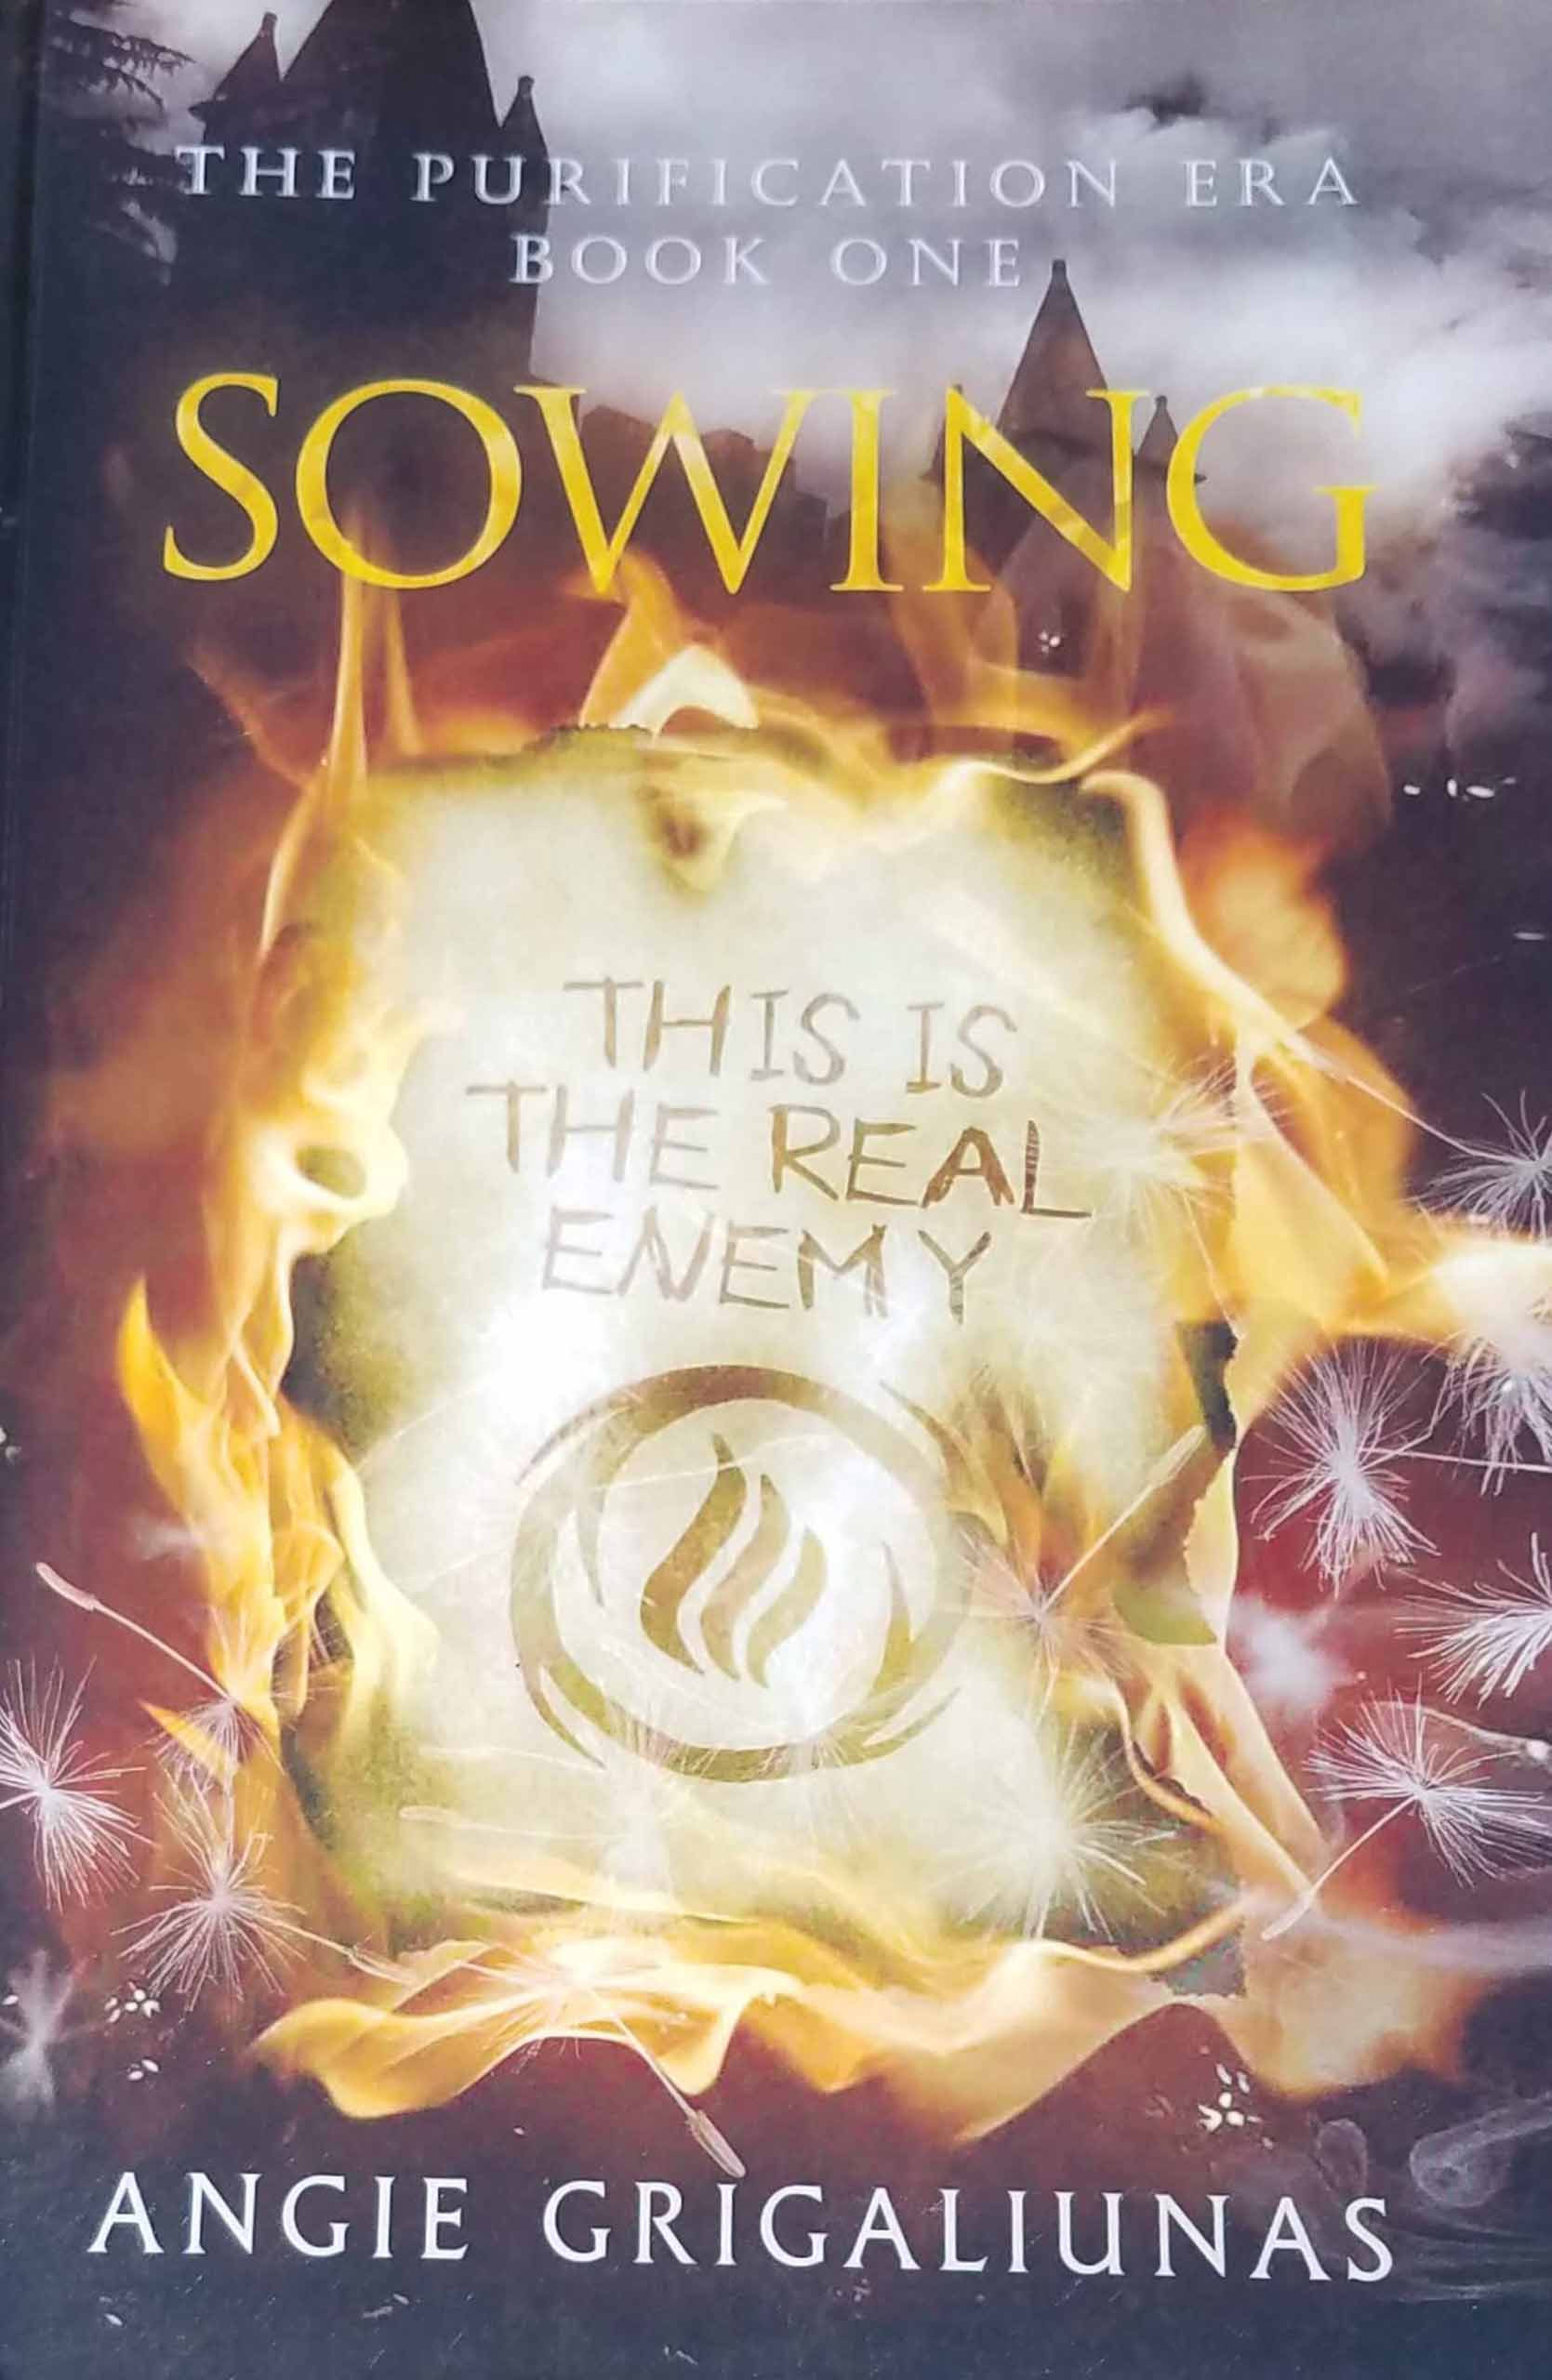 Sowing Book Cover Image